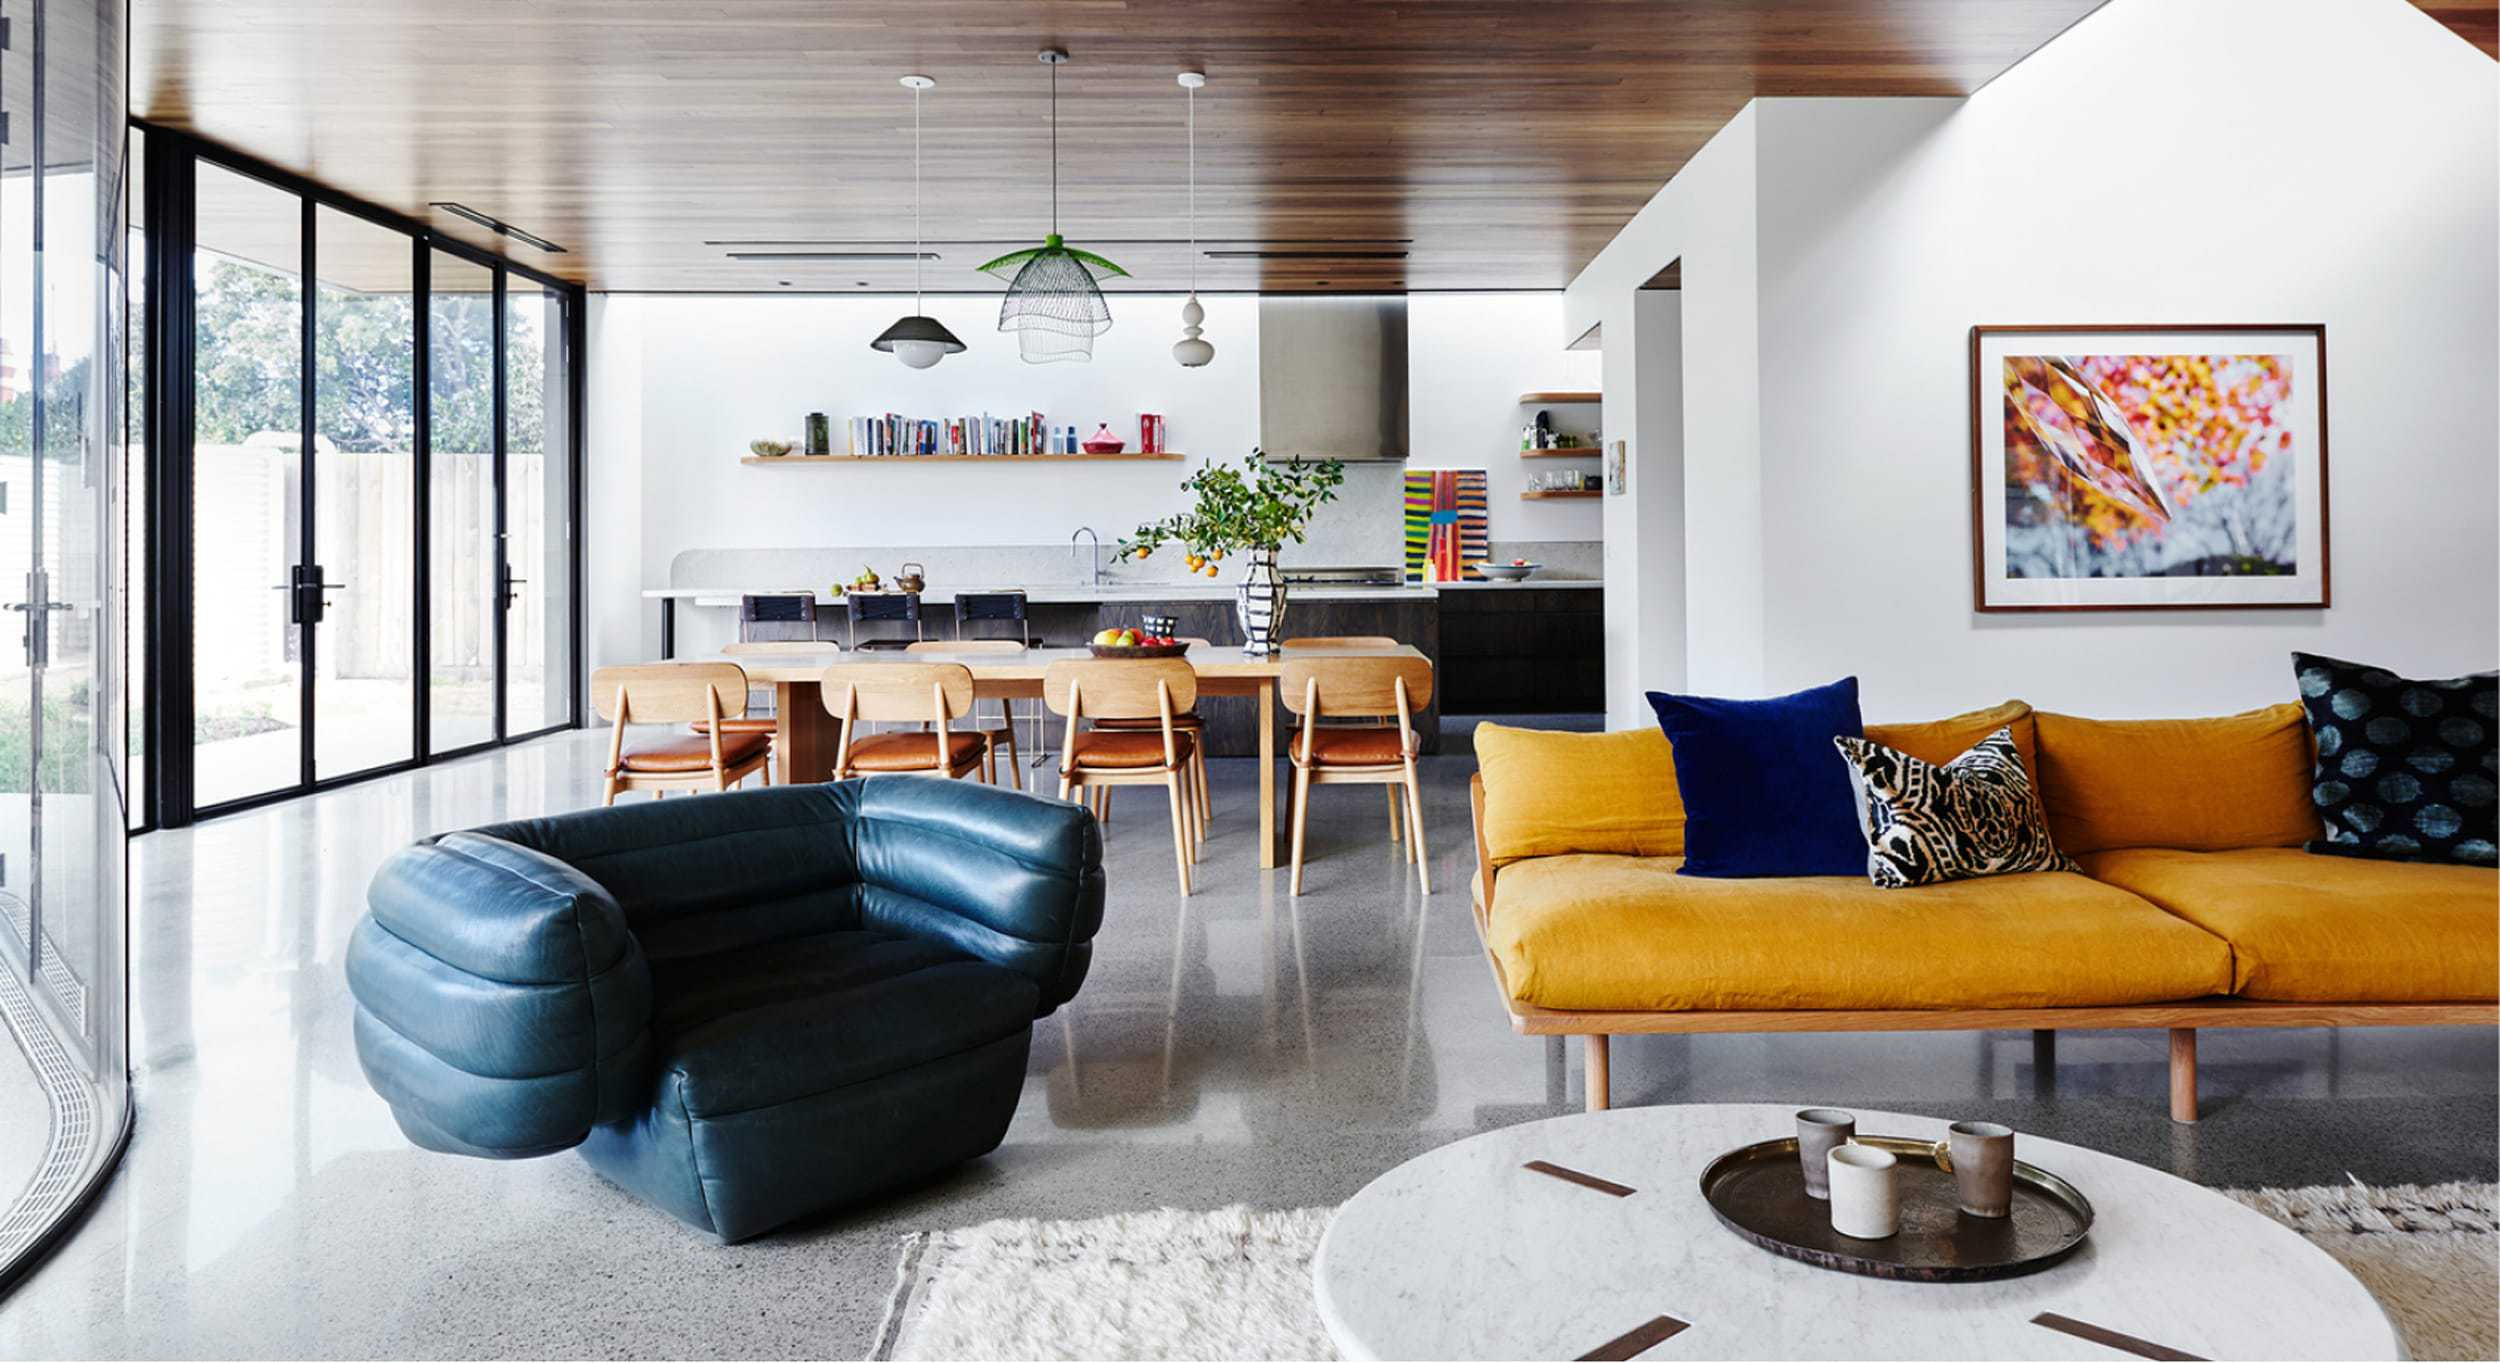 2019 Design Trends Why You Should Know About New Postmodern